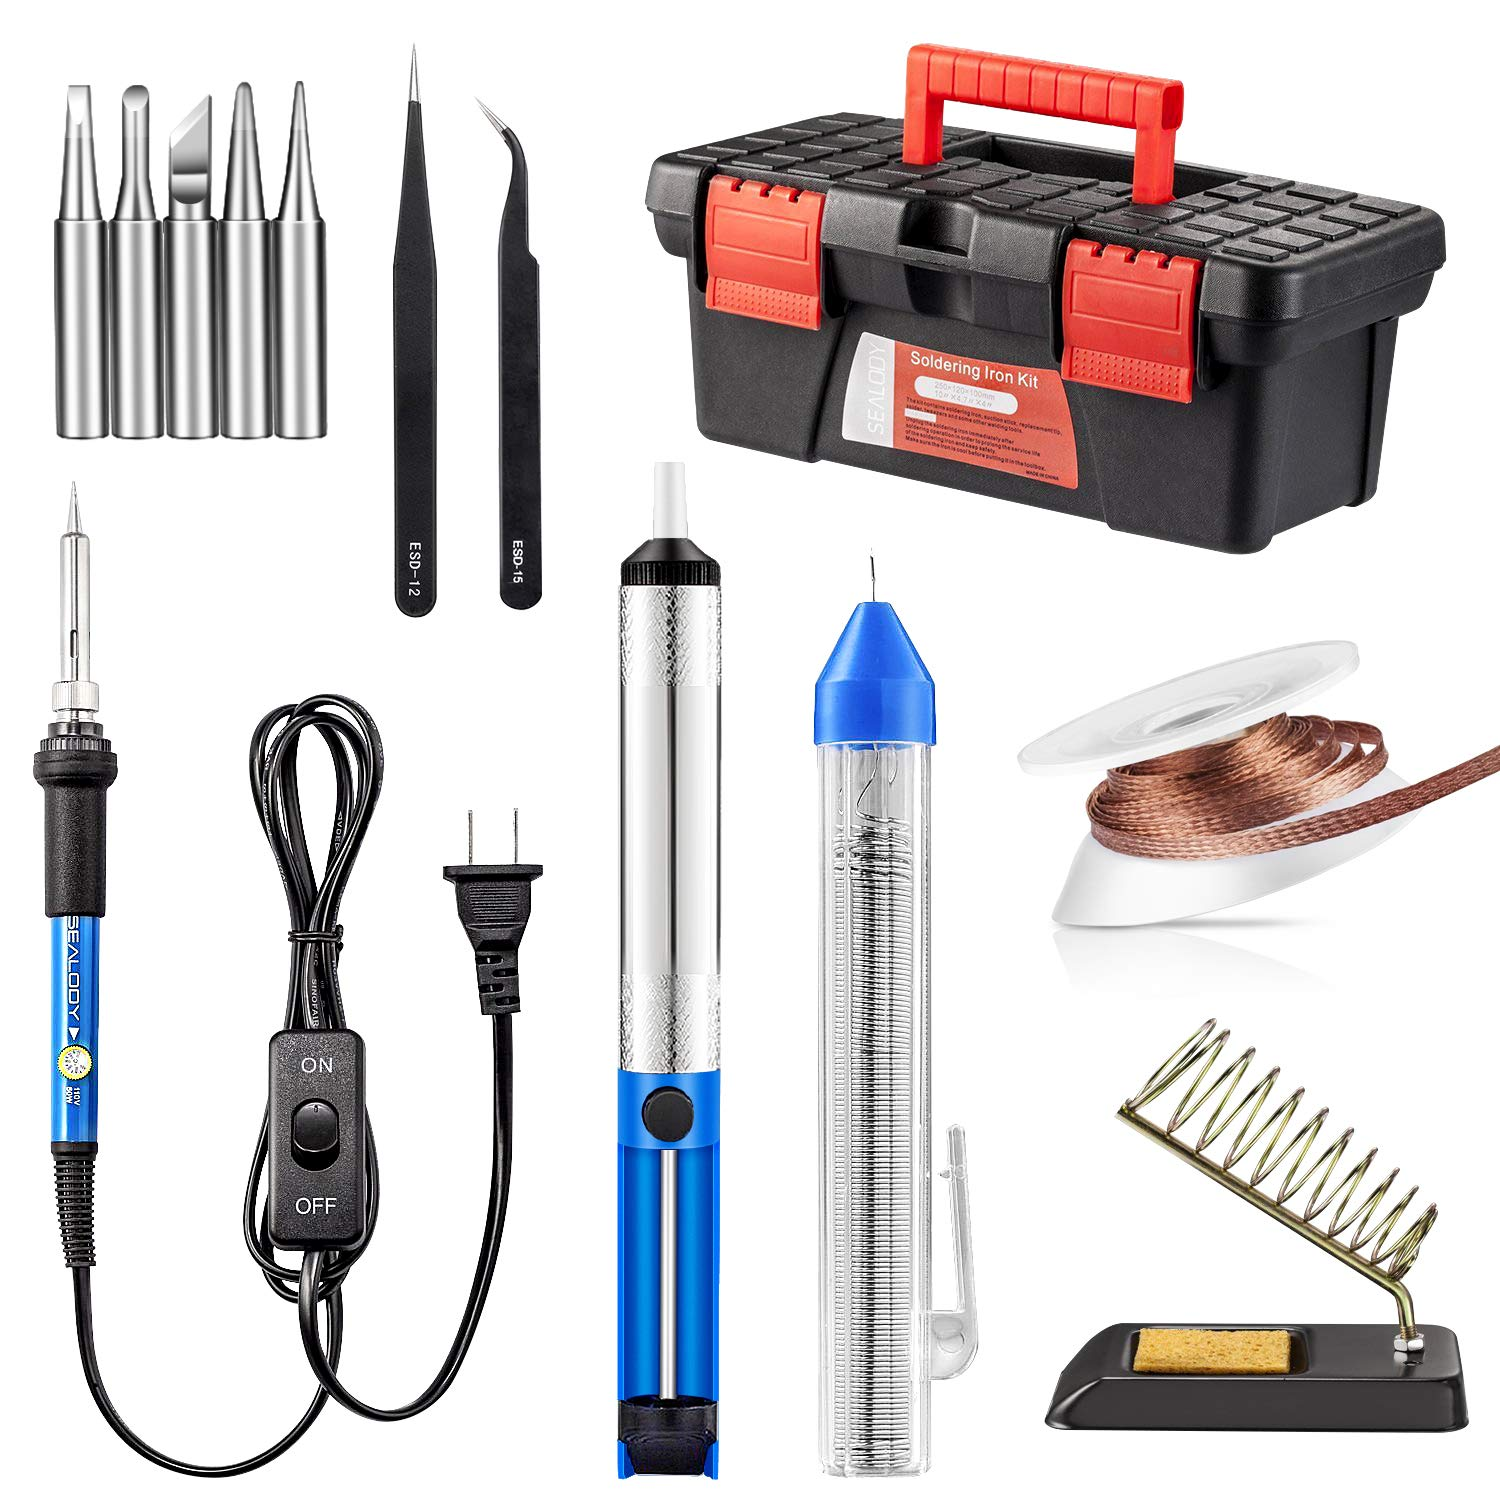 Soldering Iron Kit Including 60w Temperature Control Copper Braid For Removing Solder From Printed Circuit Boards With On Off Switch Tips Sucker Desoldering Wick Wire